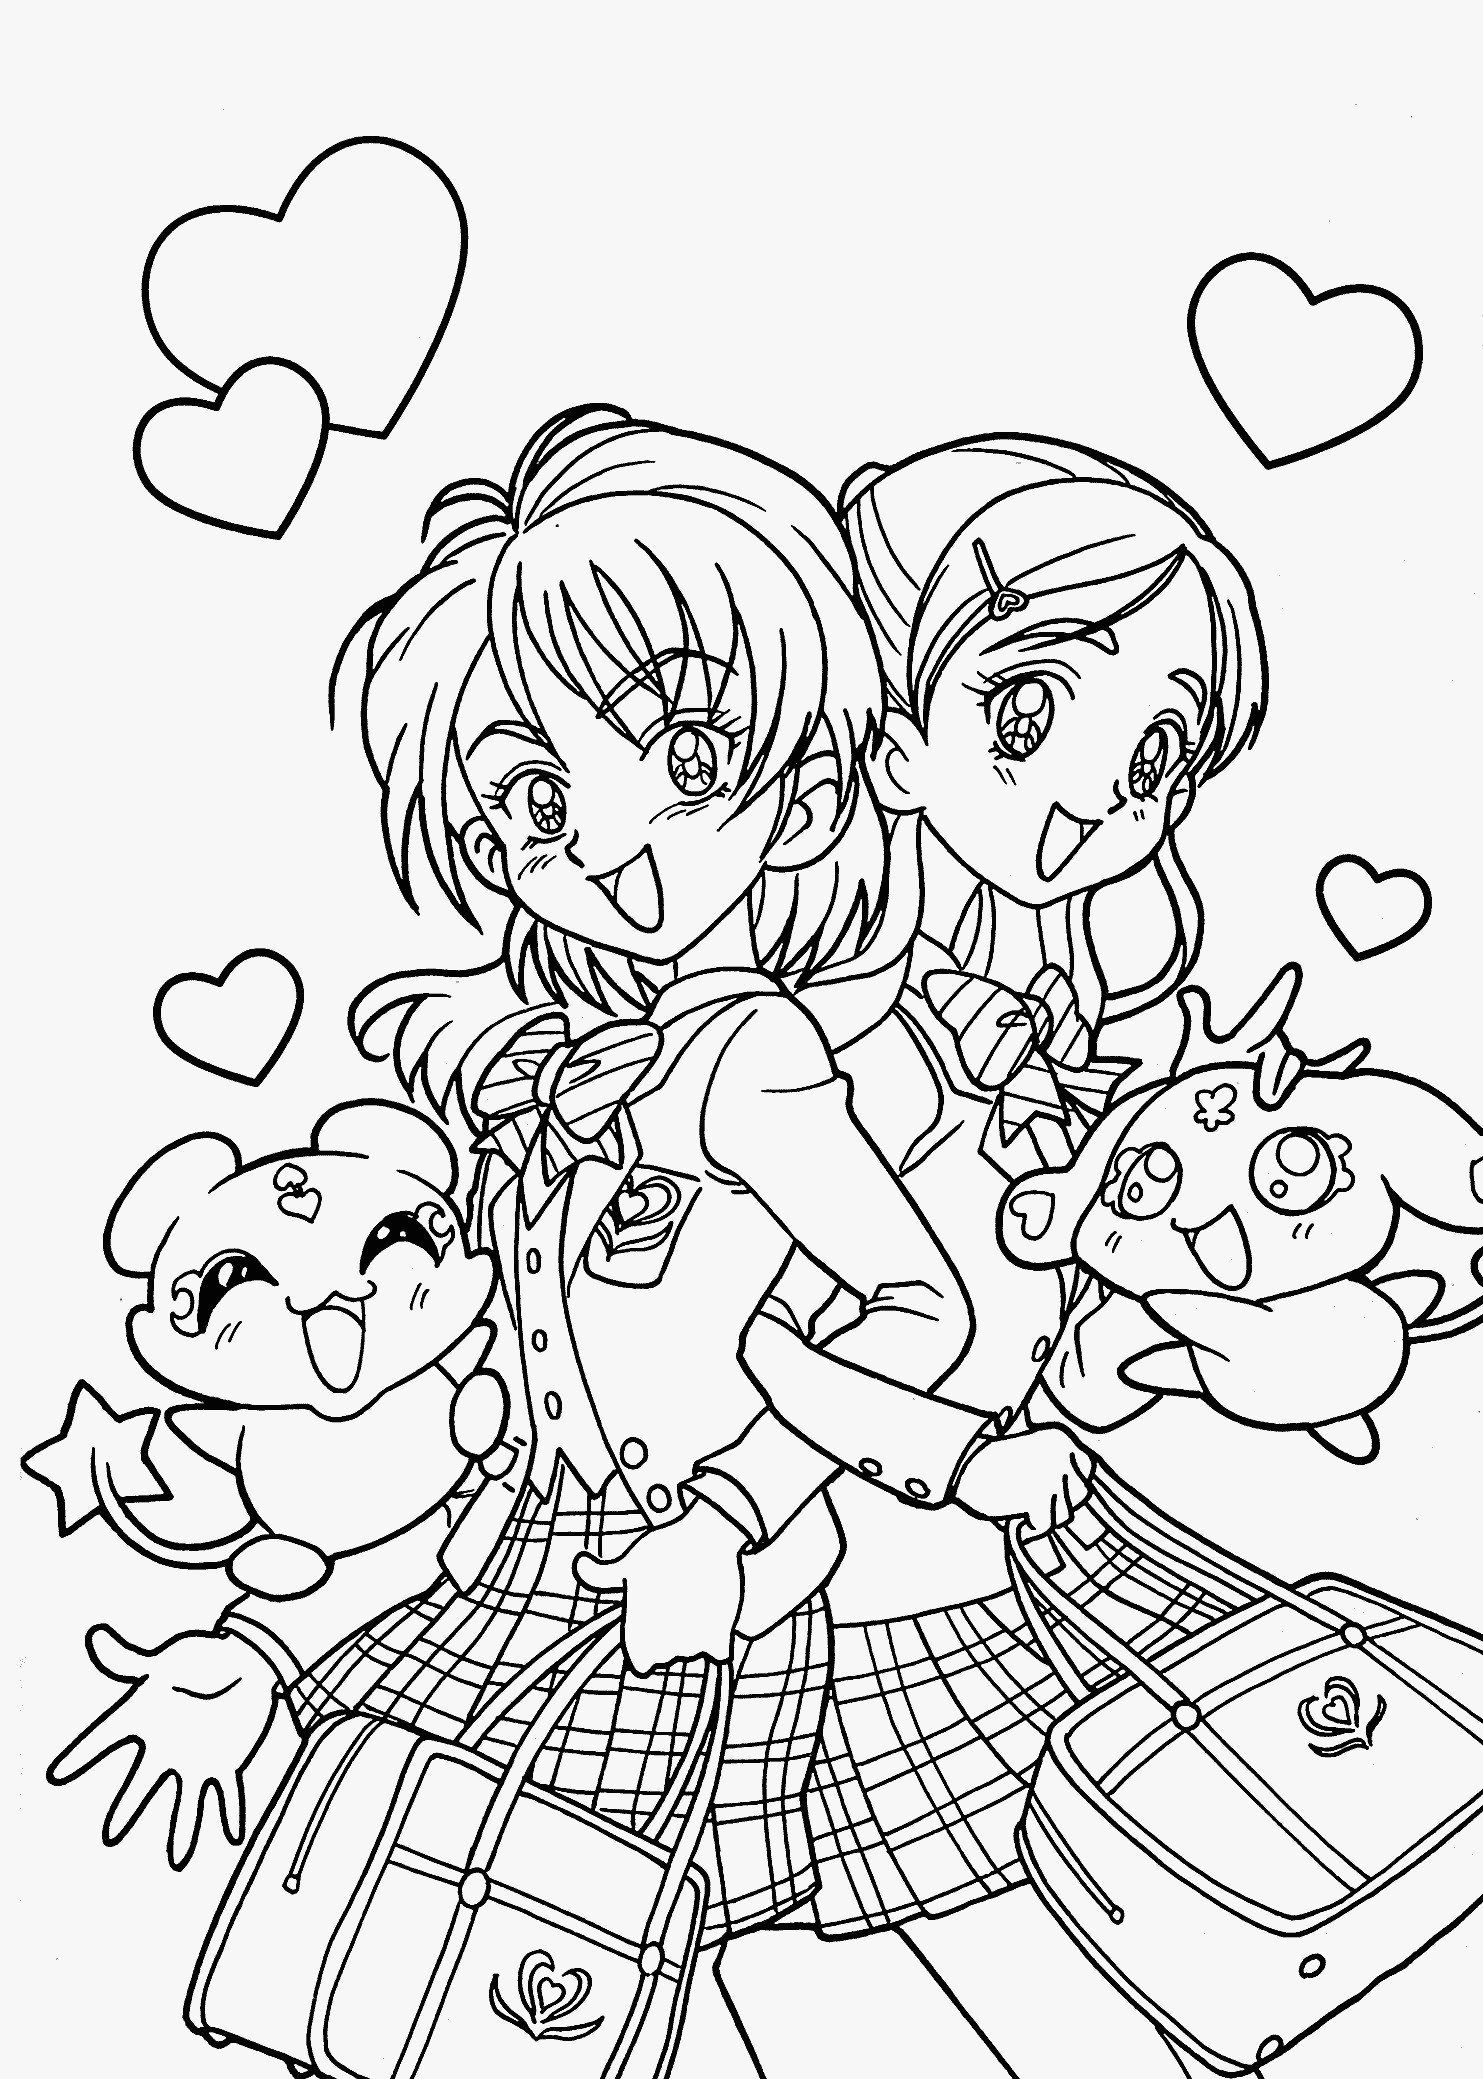 anime girl coloring pages to print anime cat girl coloring pages coloring home print to coloring girl anime pages